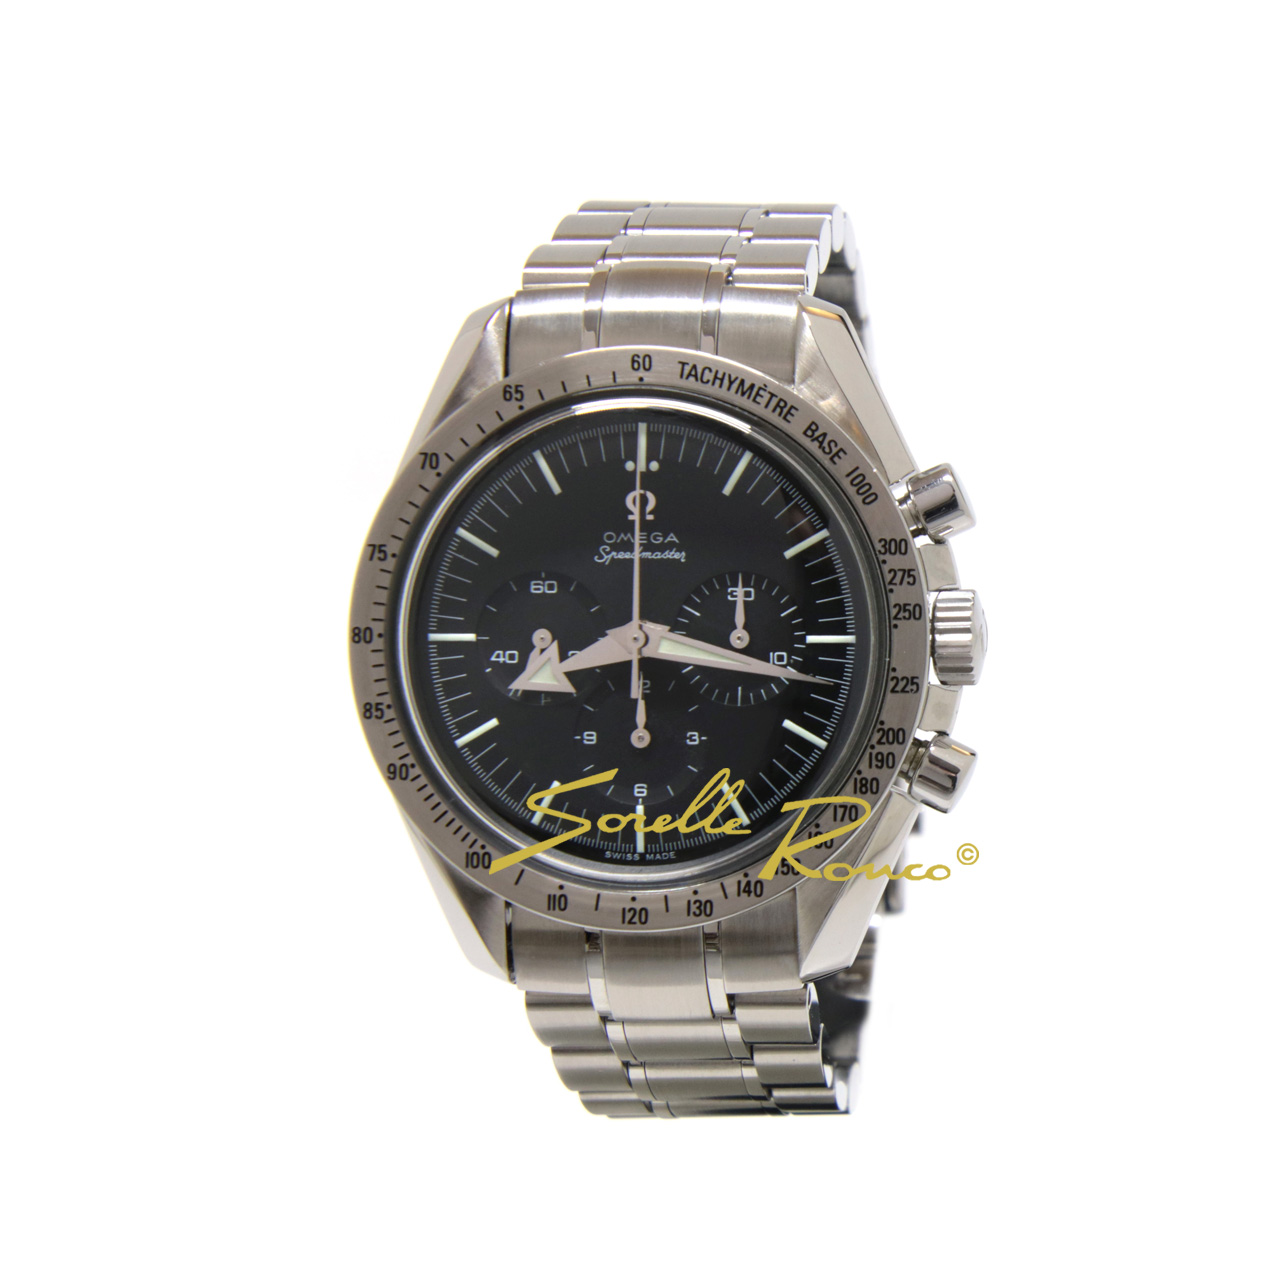 Speedmaster Broad Arrow Chrono Manuale 42mm